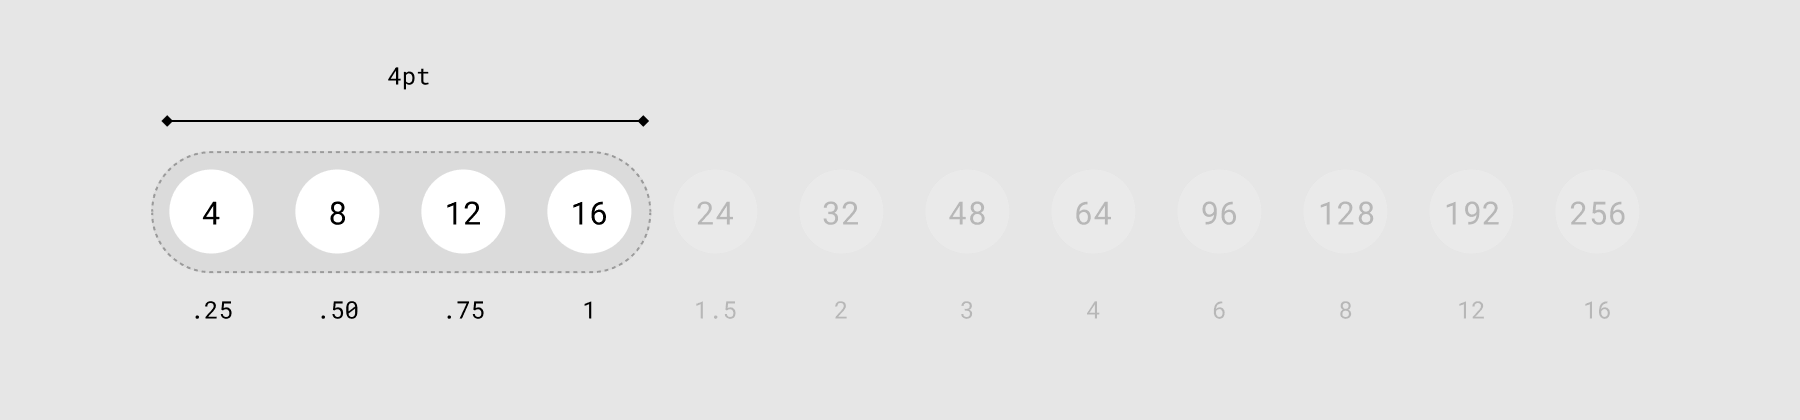 Left side of the vertical spacing scale